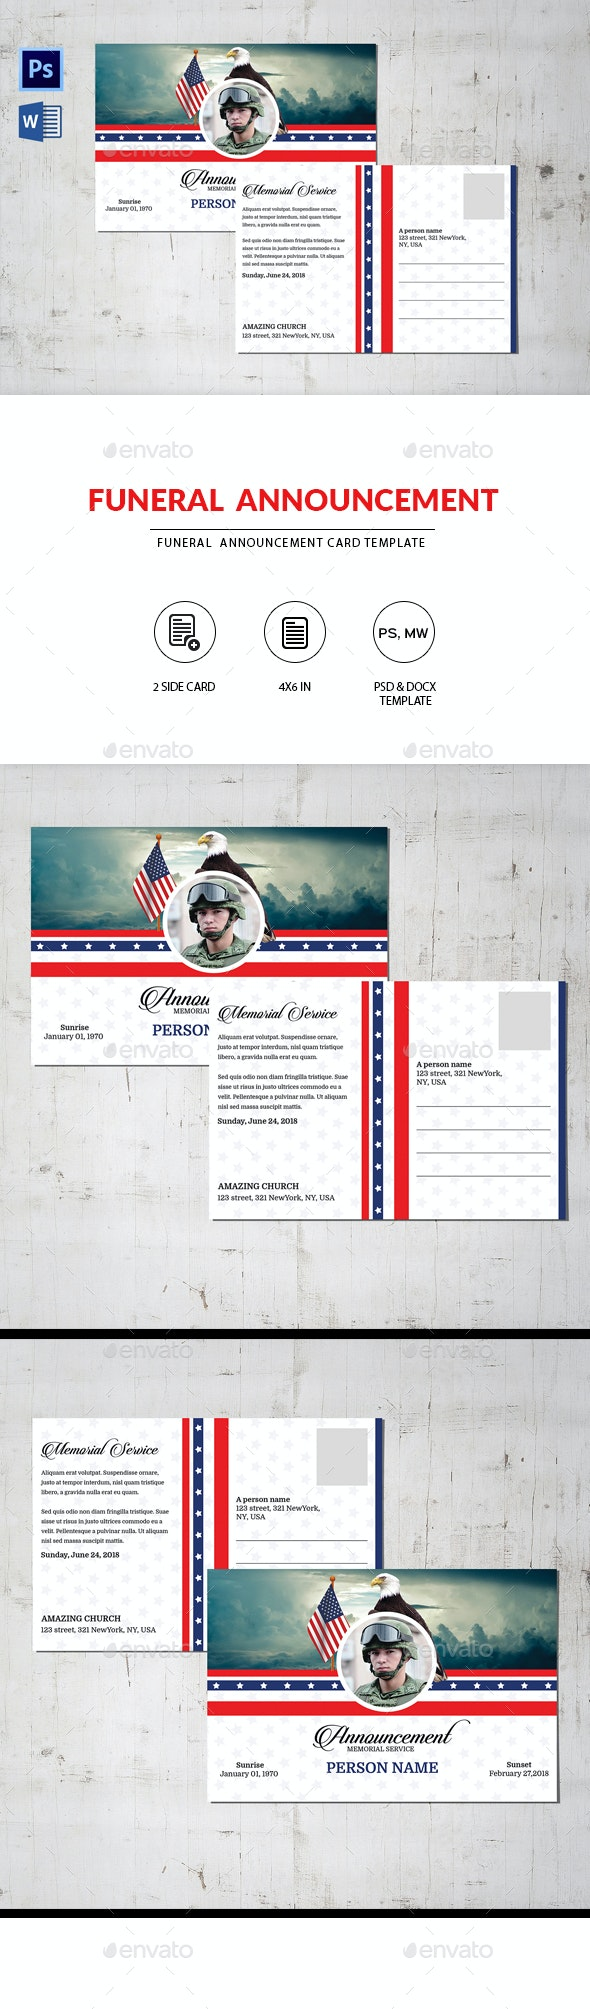 Funeral Announcement Card Template for ARMY - Invitations Cards & Invites